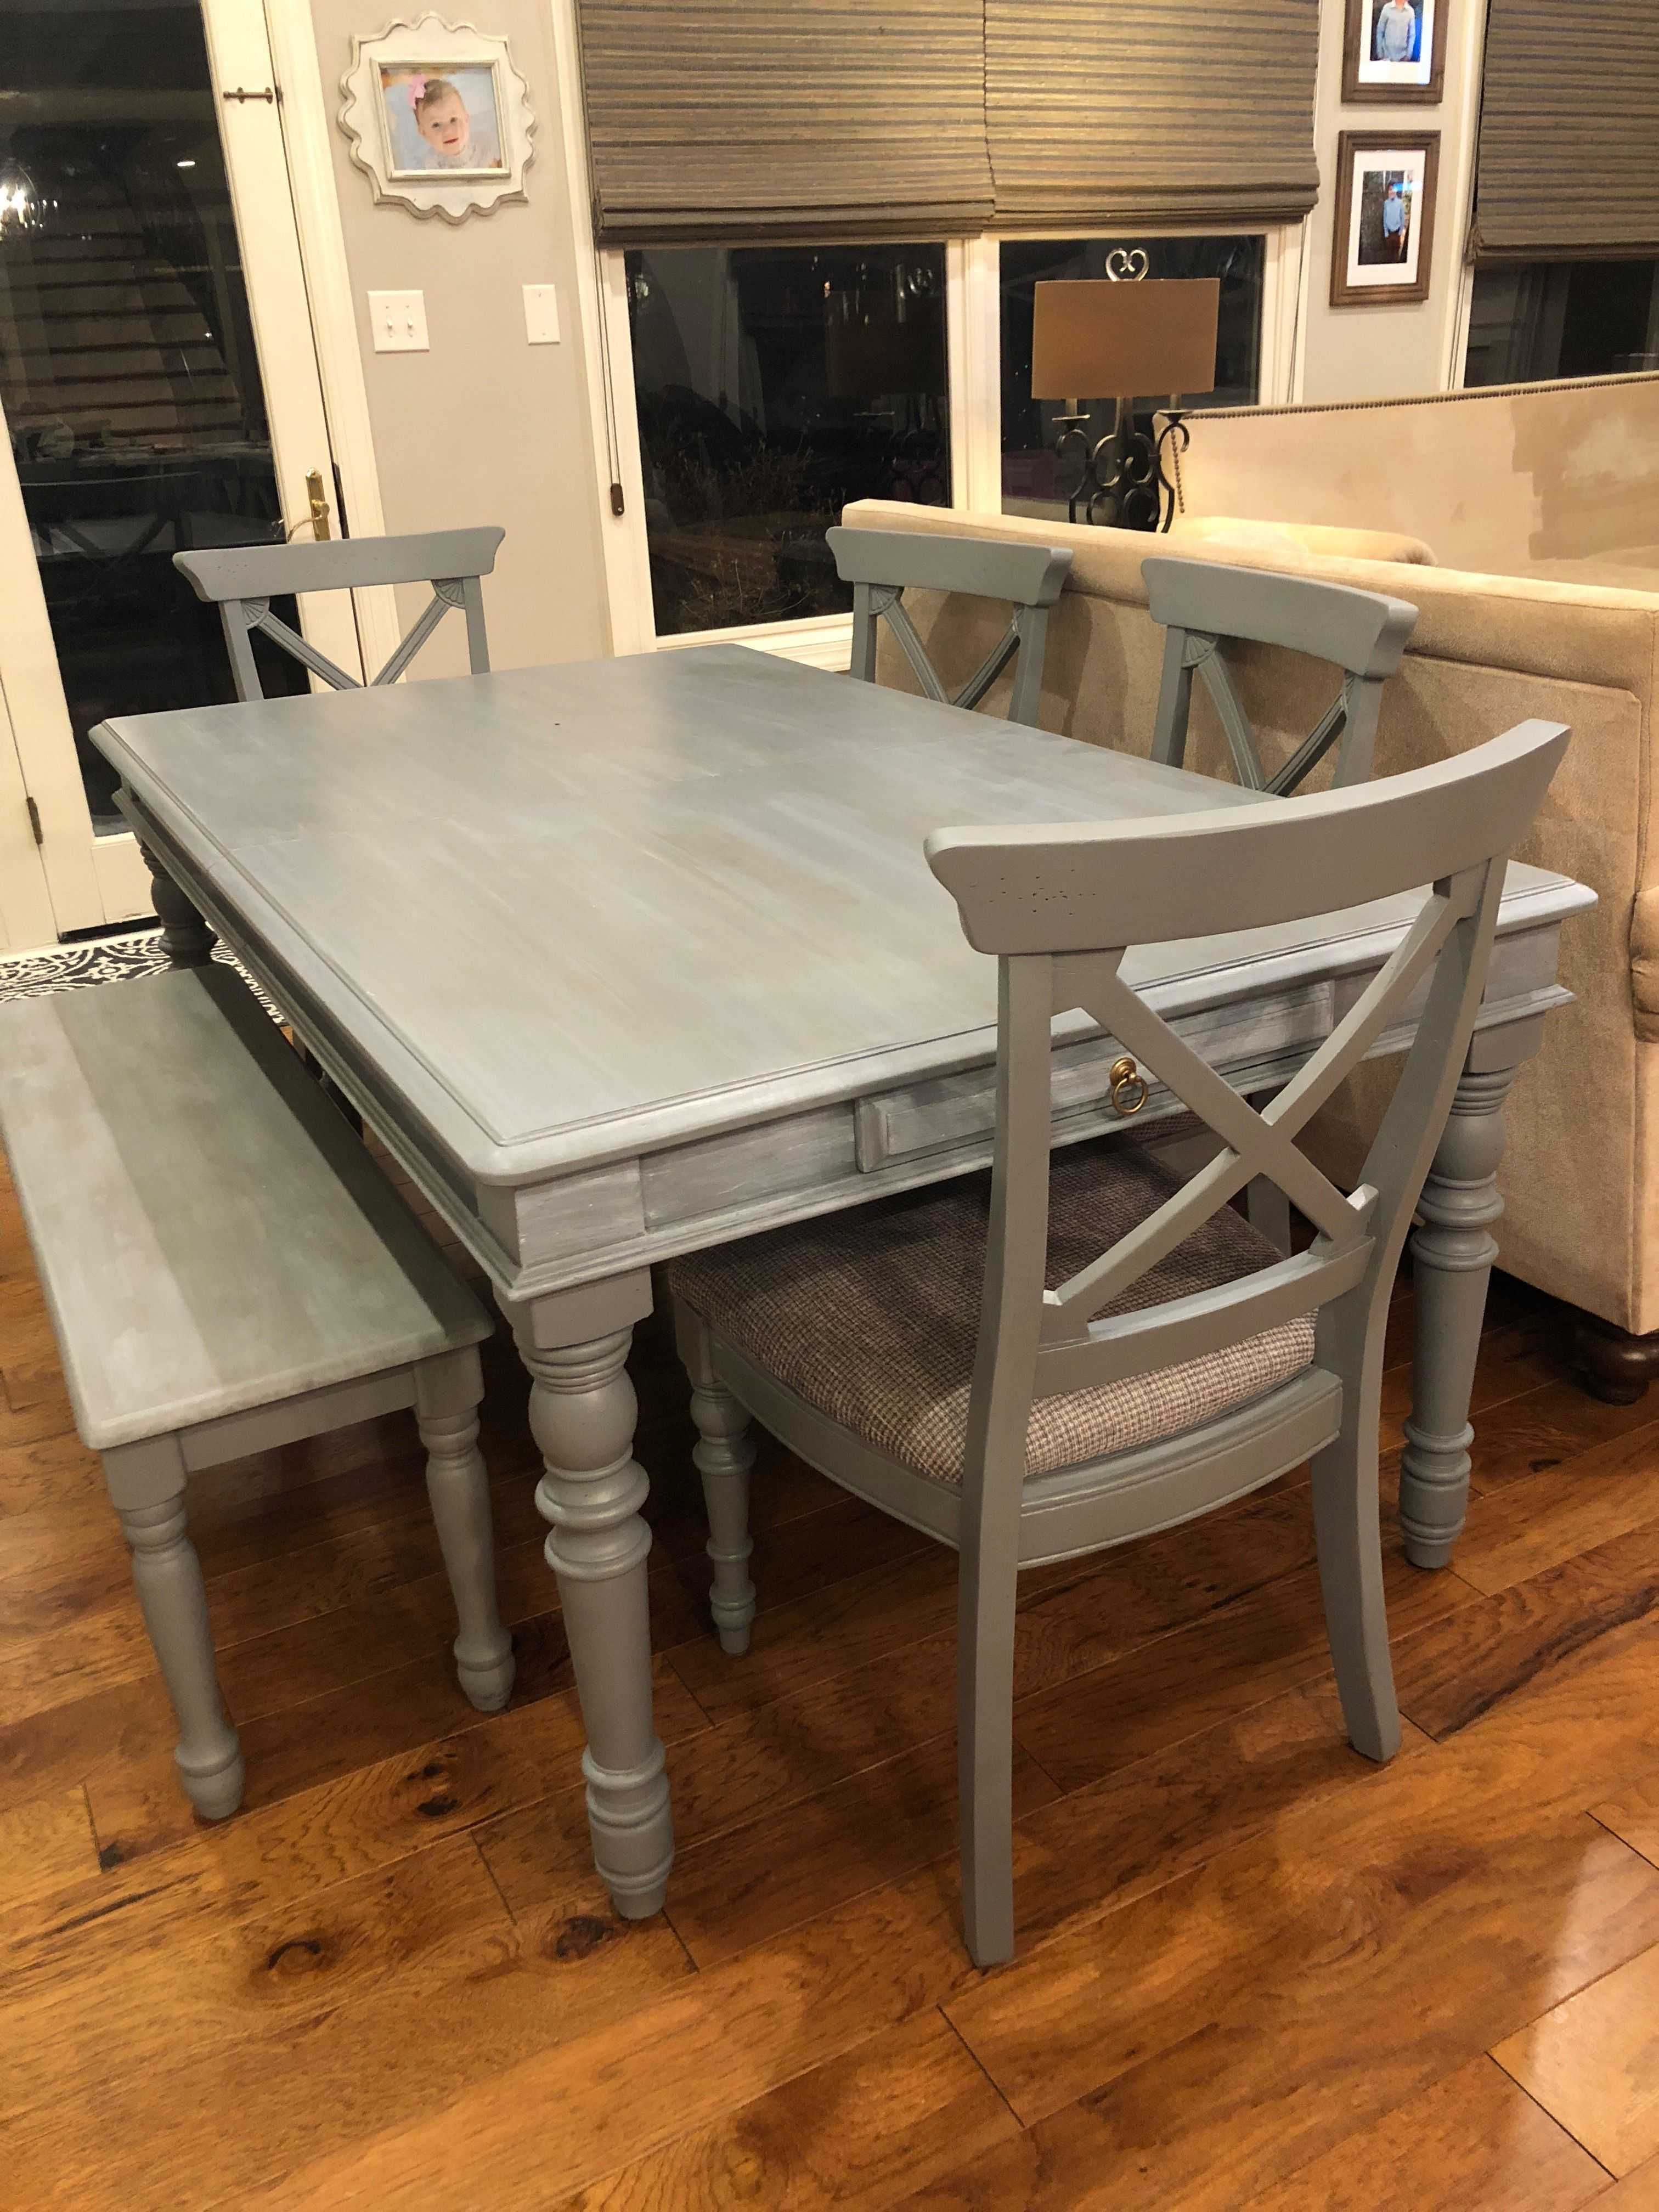 More Click Stunning Grey Chalk Paint Furniture Ideas Buffet Kitchen Chairs Chalk Paint Chalk Paint Kitchen Table Painted Kitchen Tables Diy Kitchen Table